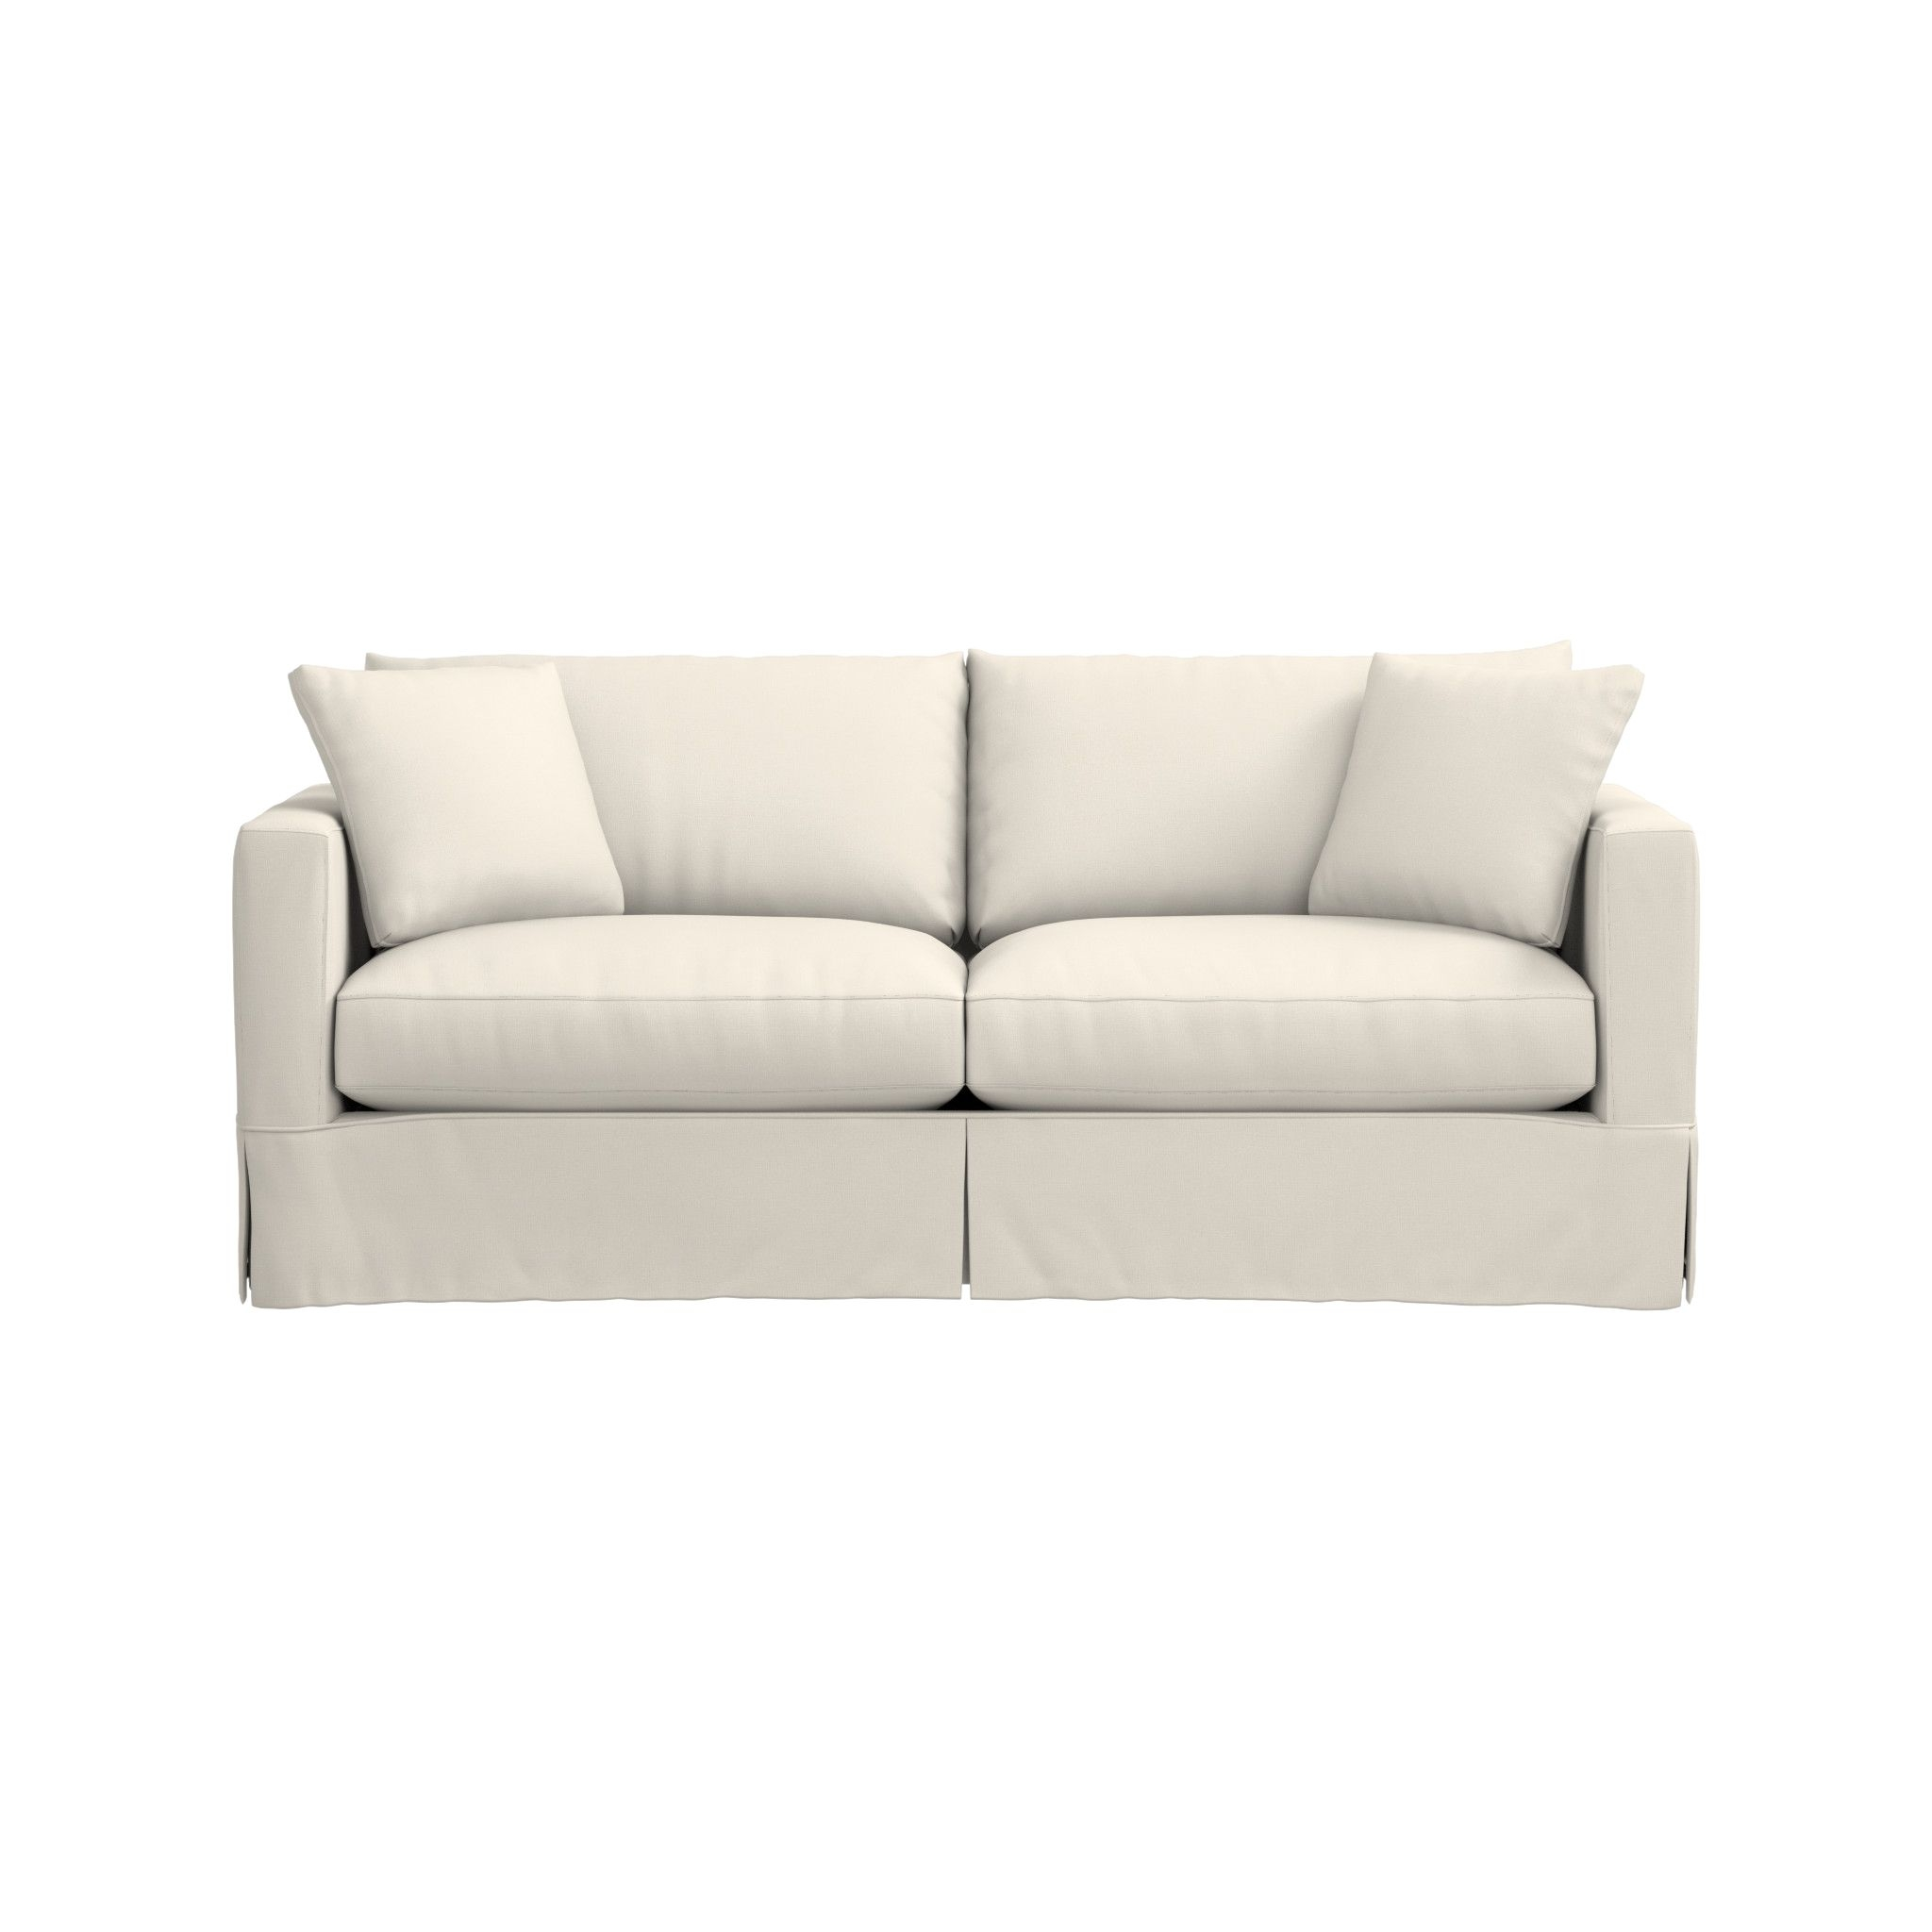 Willow White Sleeper Couch | Crate And Barrel intended for Crate and Barrel Sofa Sleepers (Image 15 of 15)